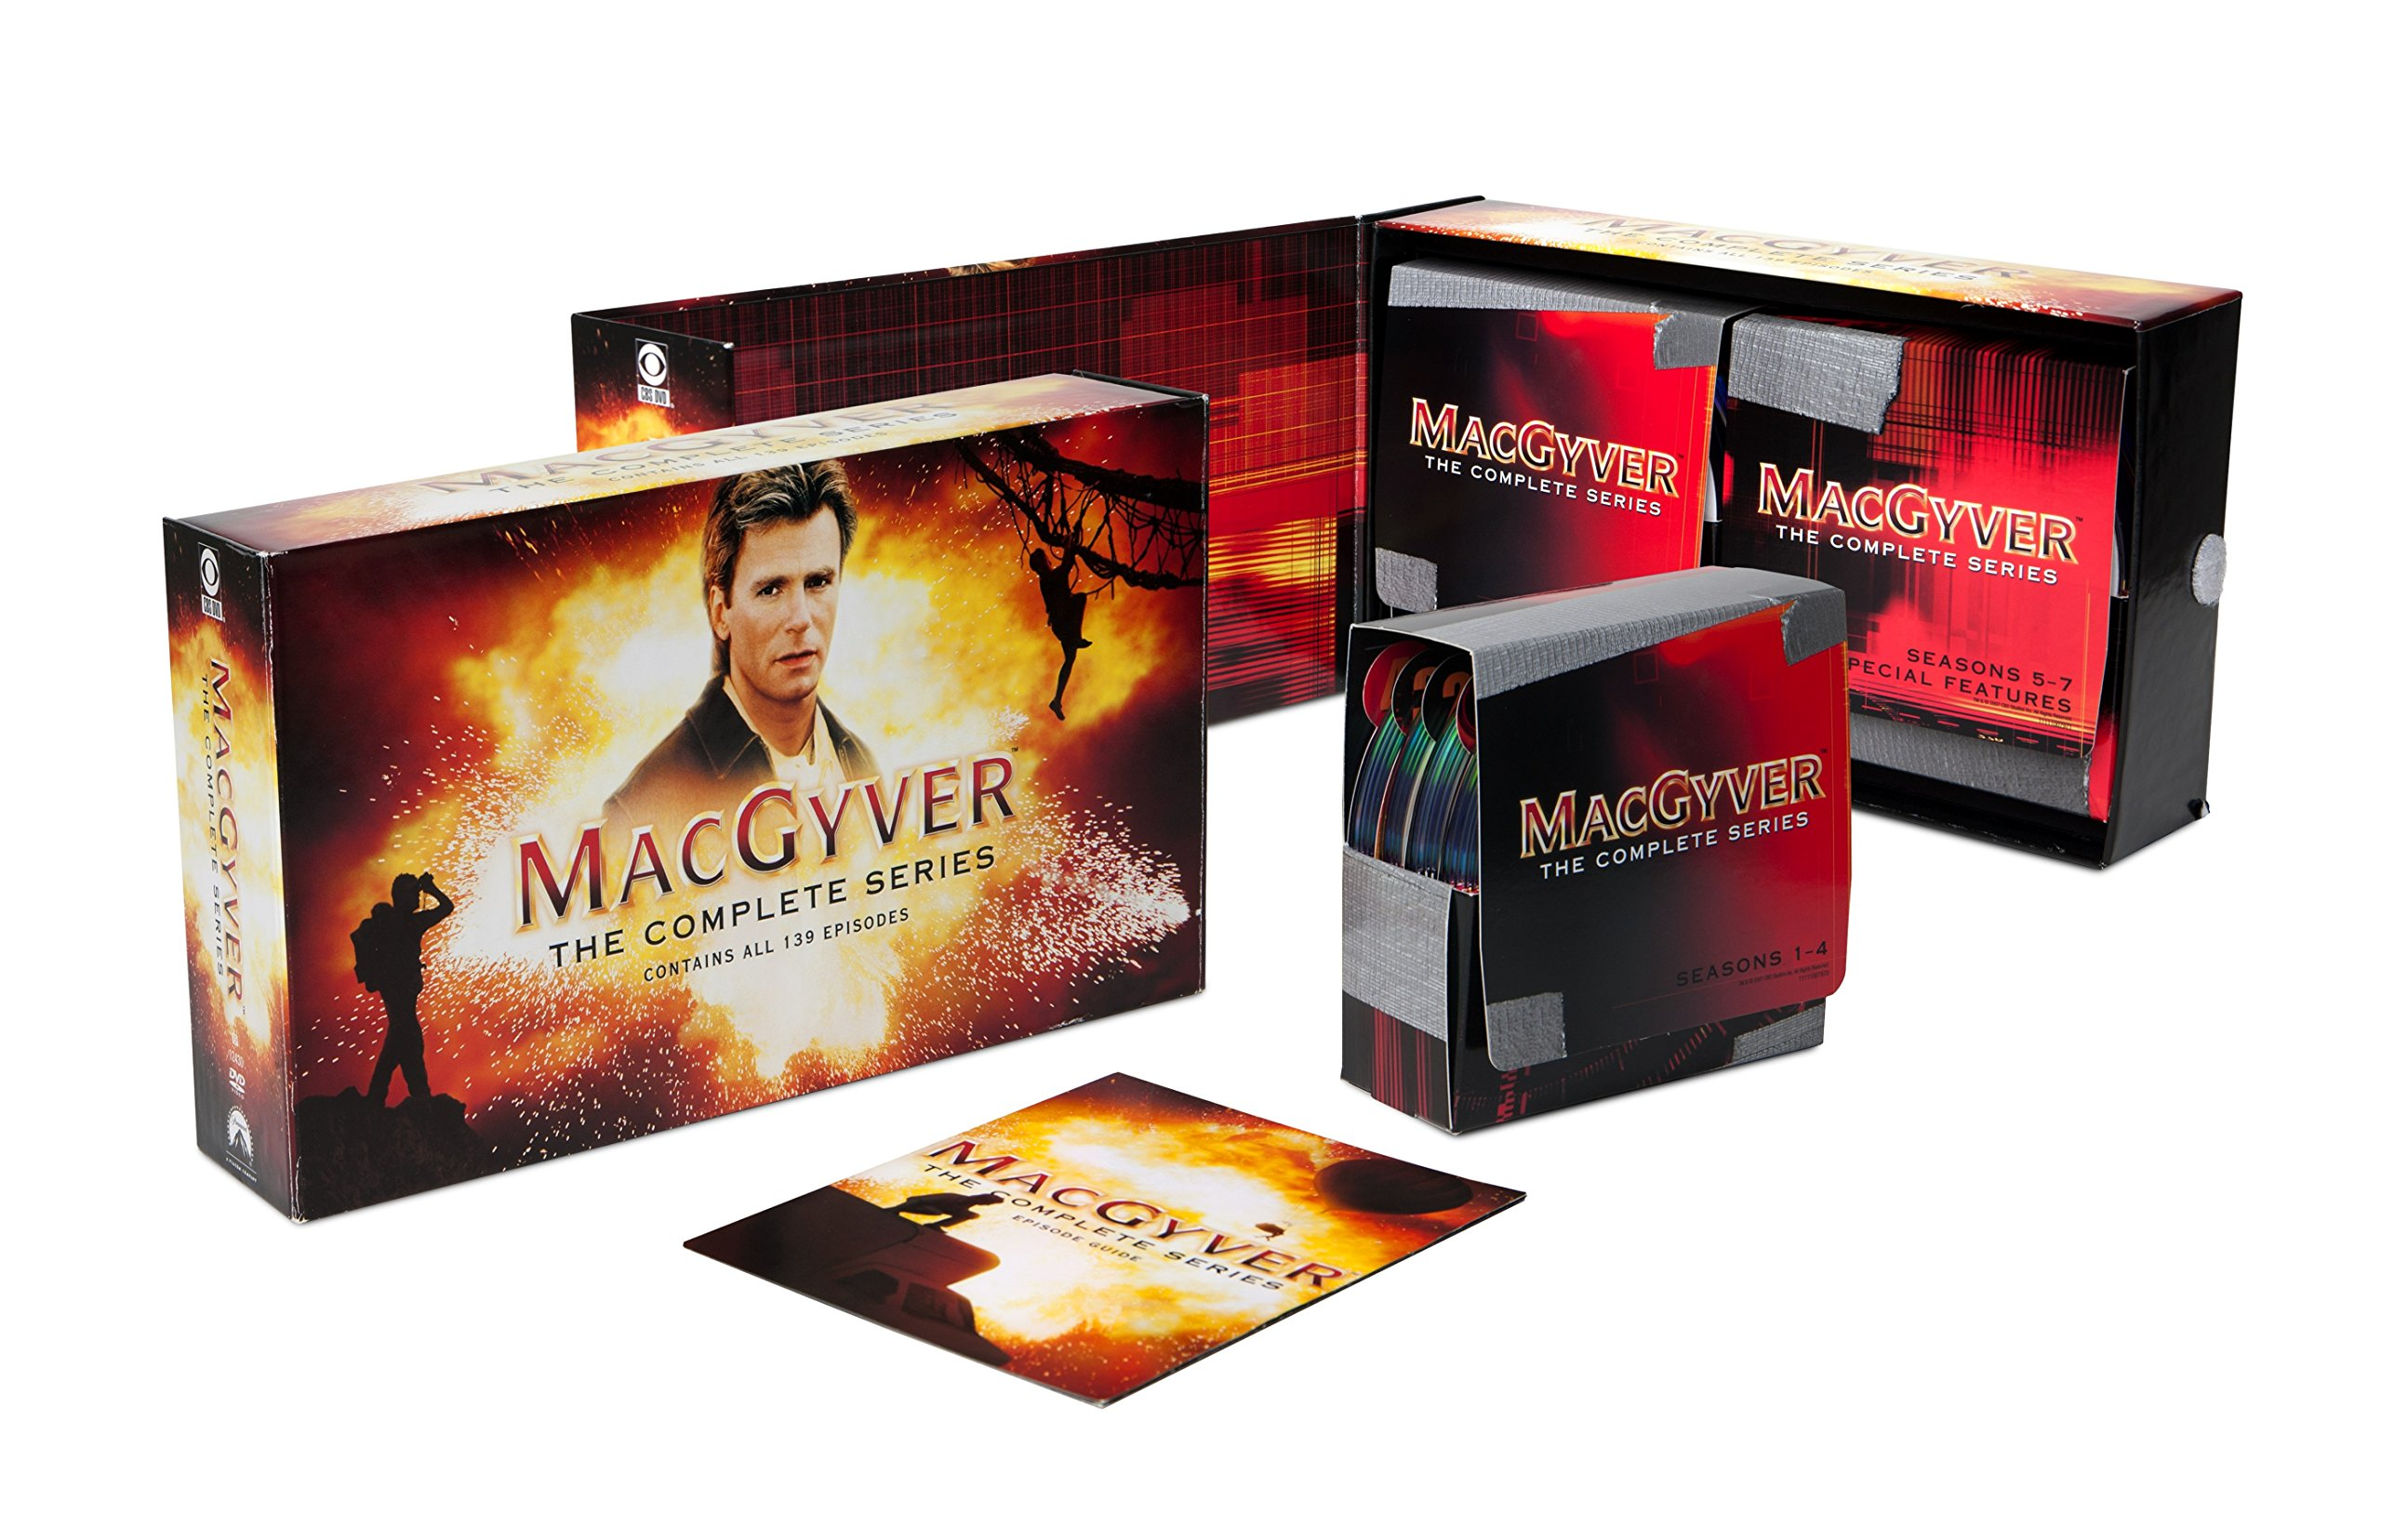 MacGyver - The Complete Series by Paramount